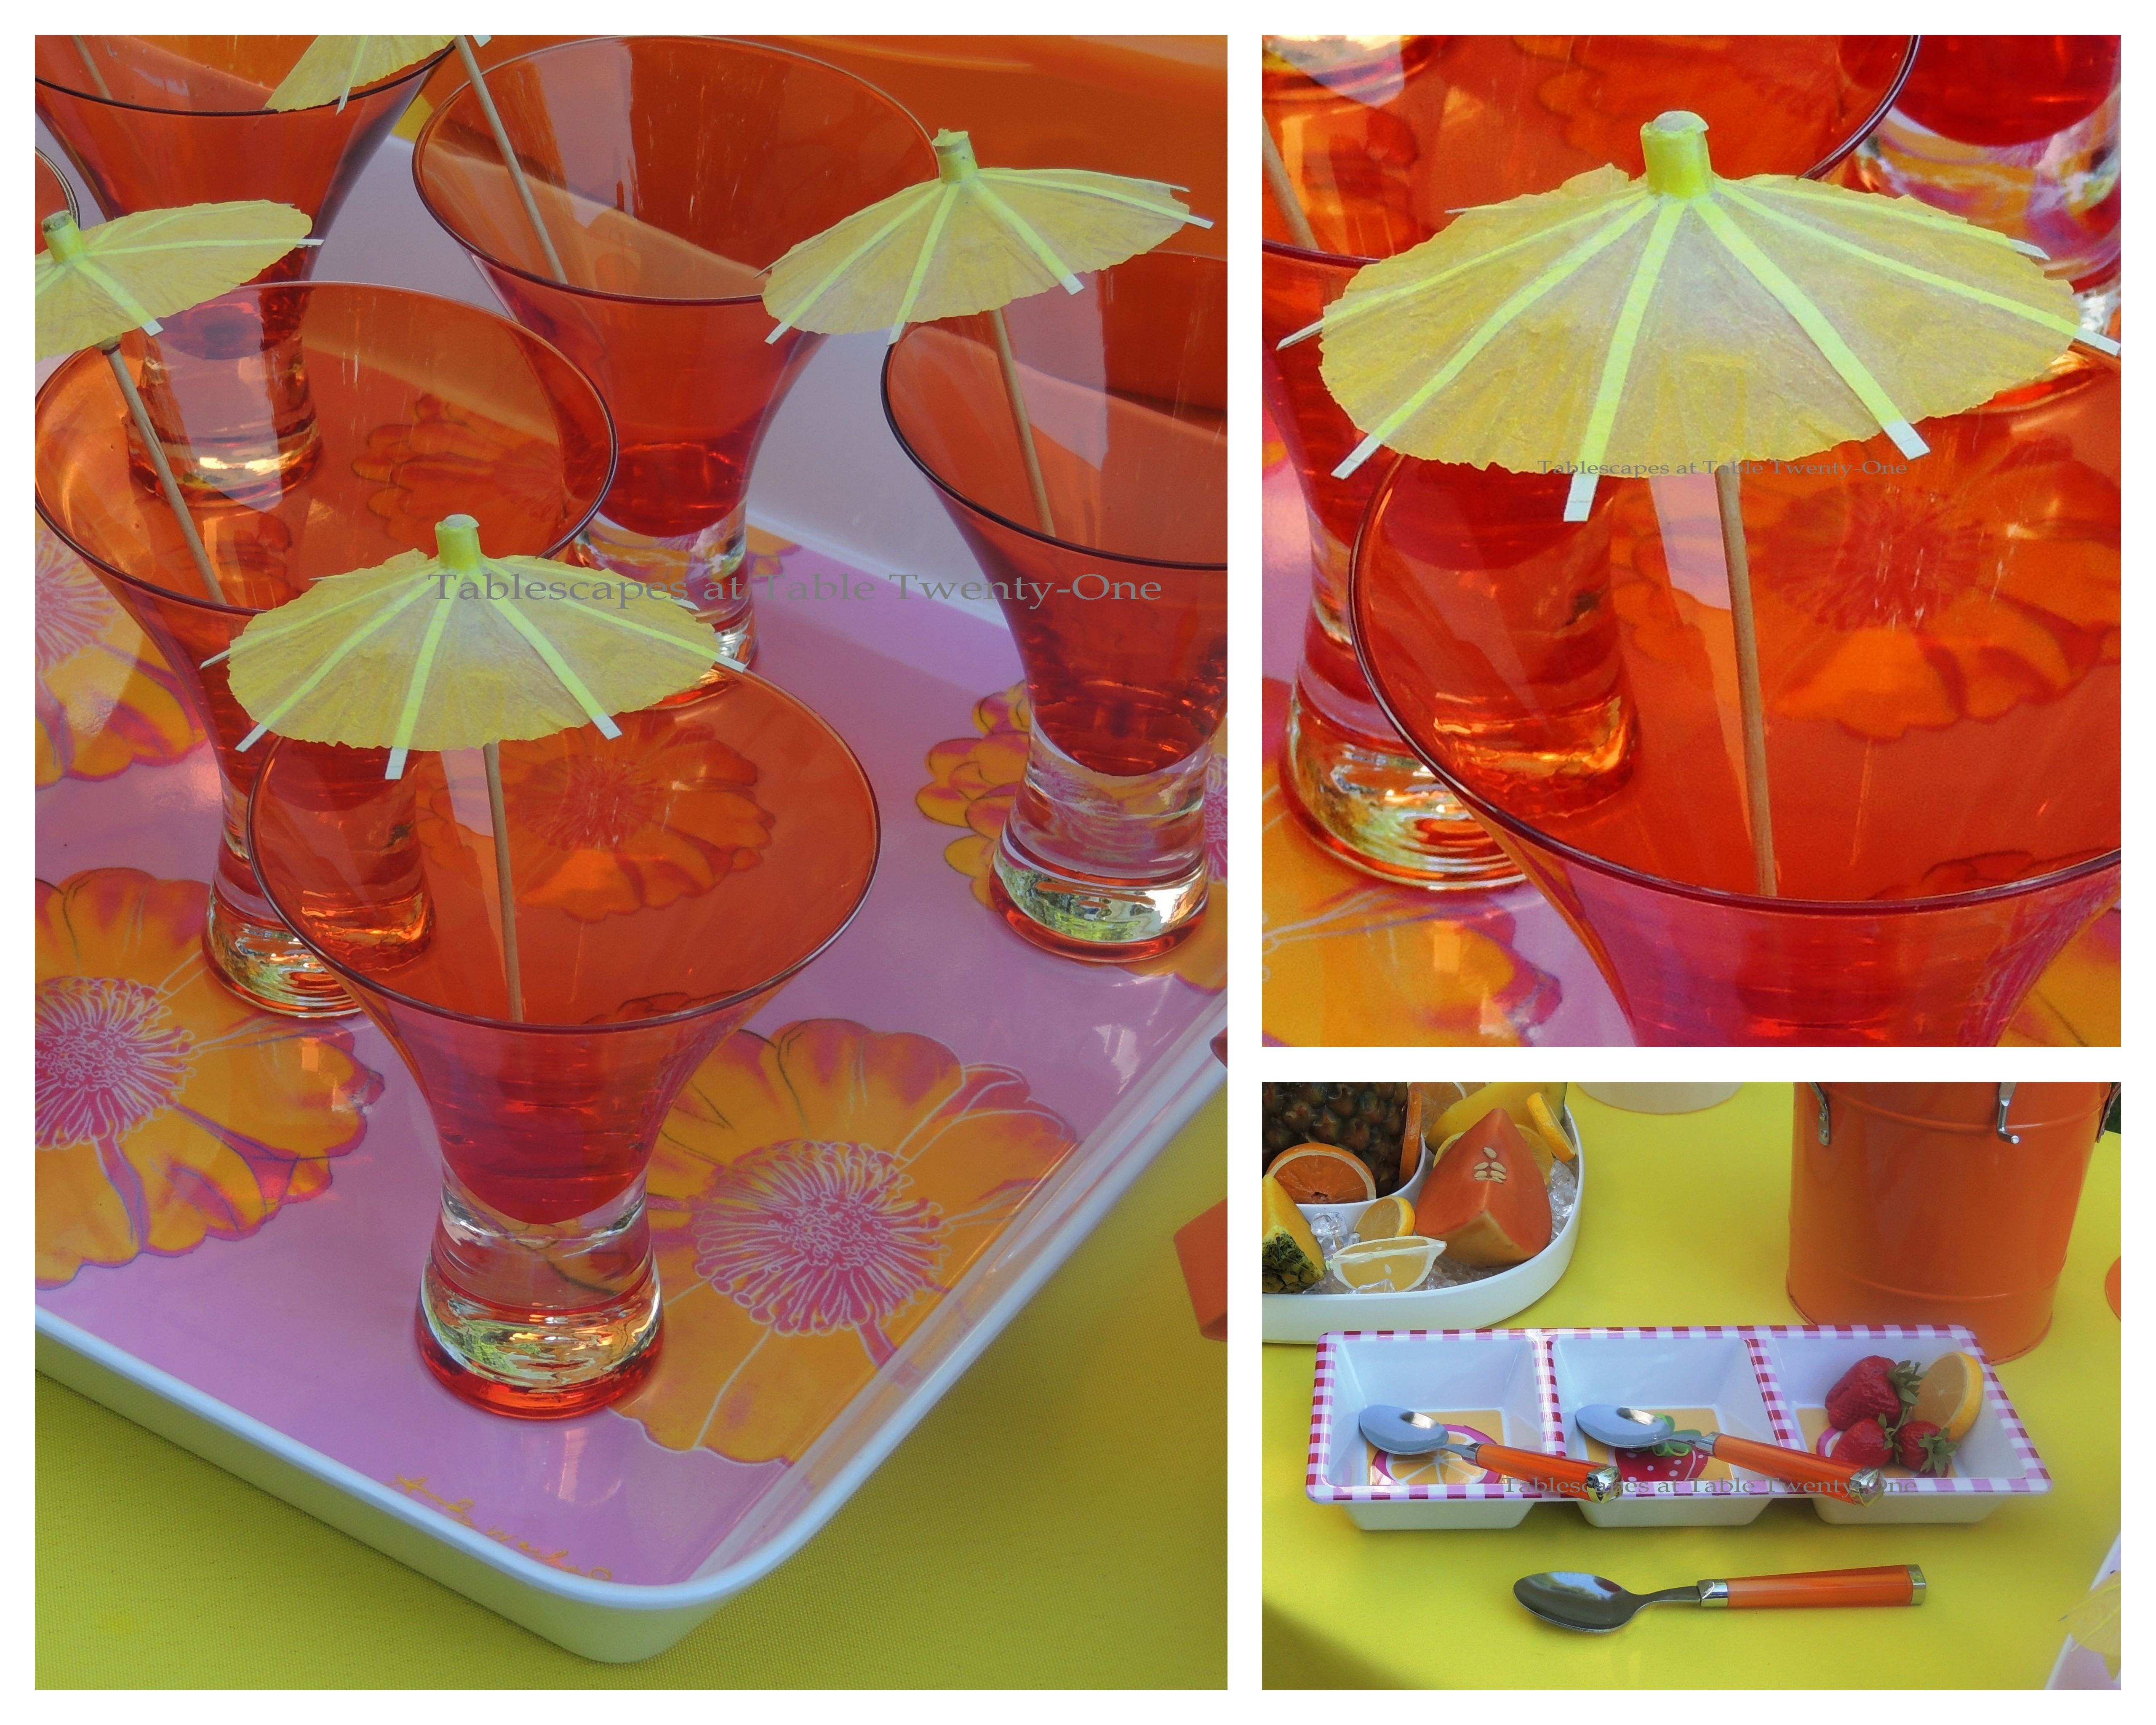 Tablescapes at Table Twenty-One, www.tabletwentyone.wordpress.com, Hot Fun in the Summertime! - Martini glasses with parasols, fruit tray collage